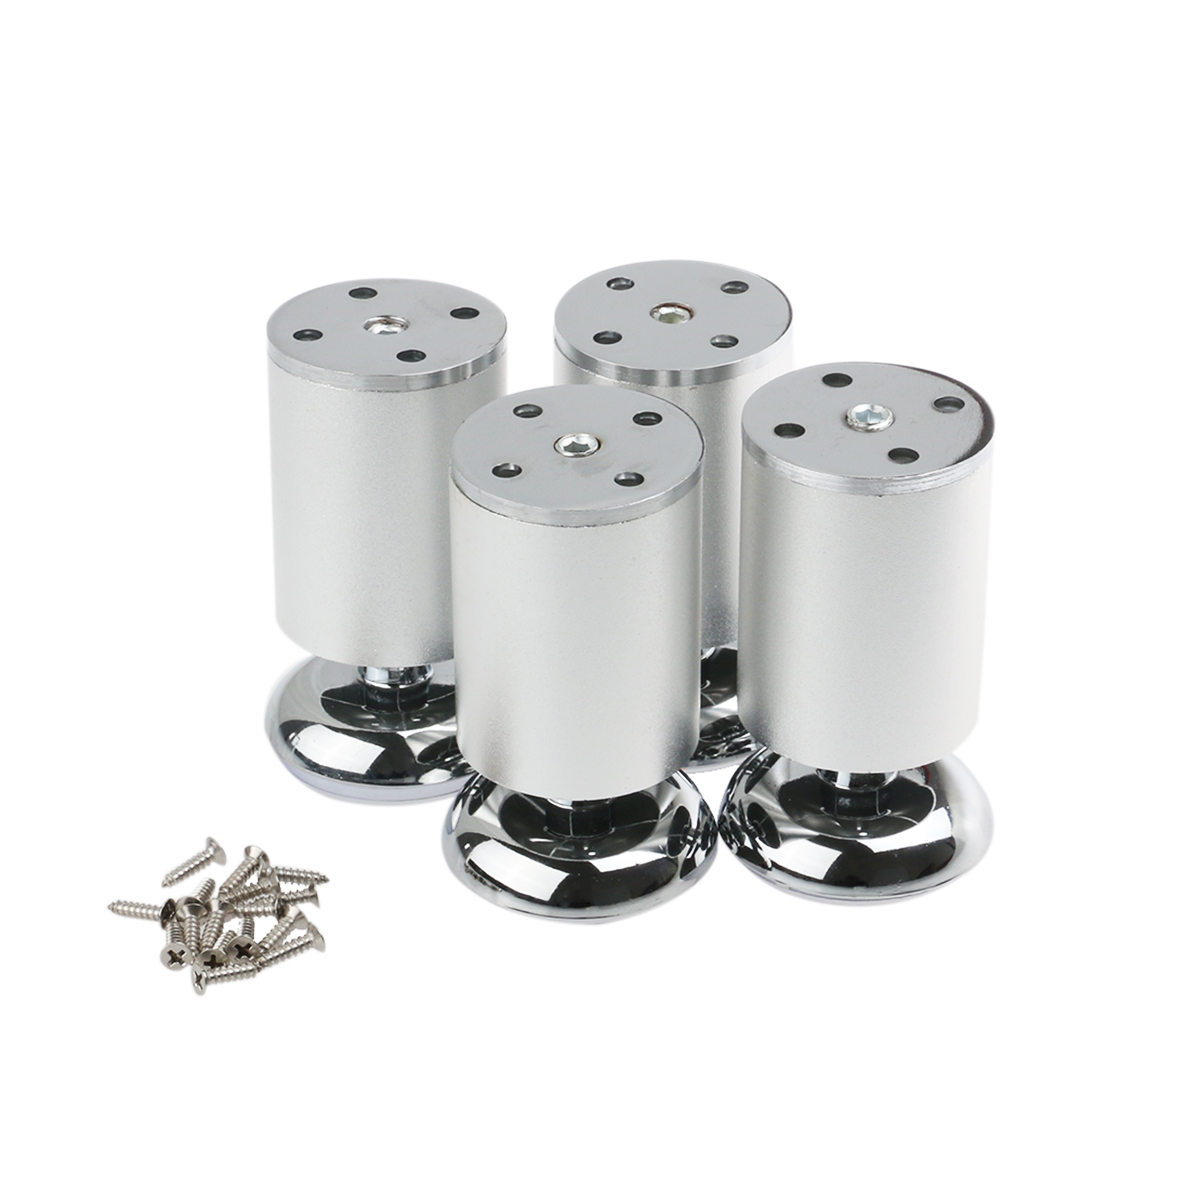 4pcs Stainless Steel Kitchen Adjustable Feet Round Furniture Legs for DIY  furniture, cabinets, shelves (Silver)